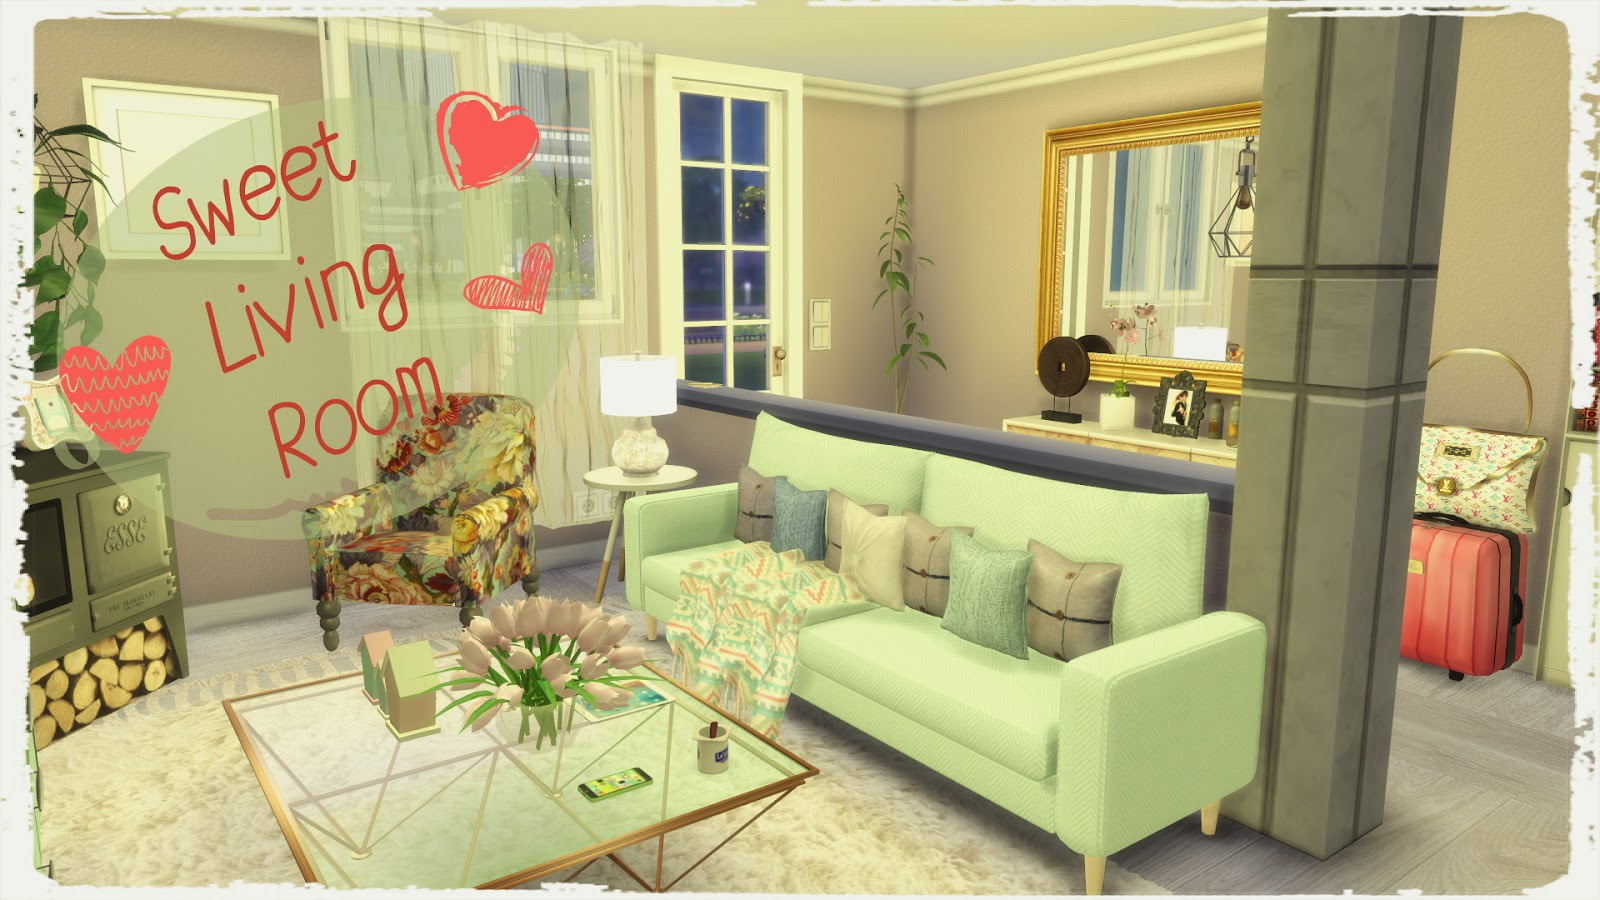 Sims 4 sweet living room dinha for Sims 4 living room ideas